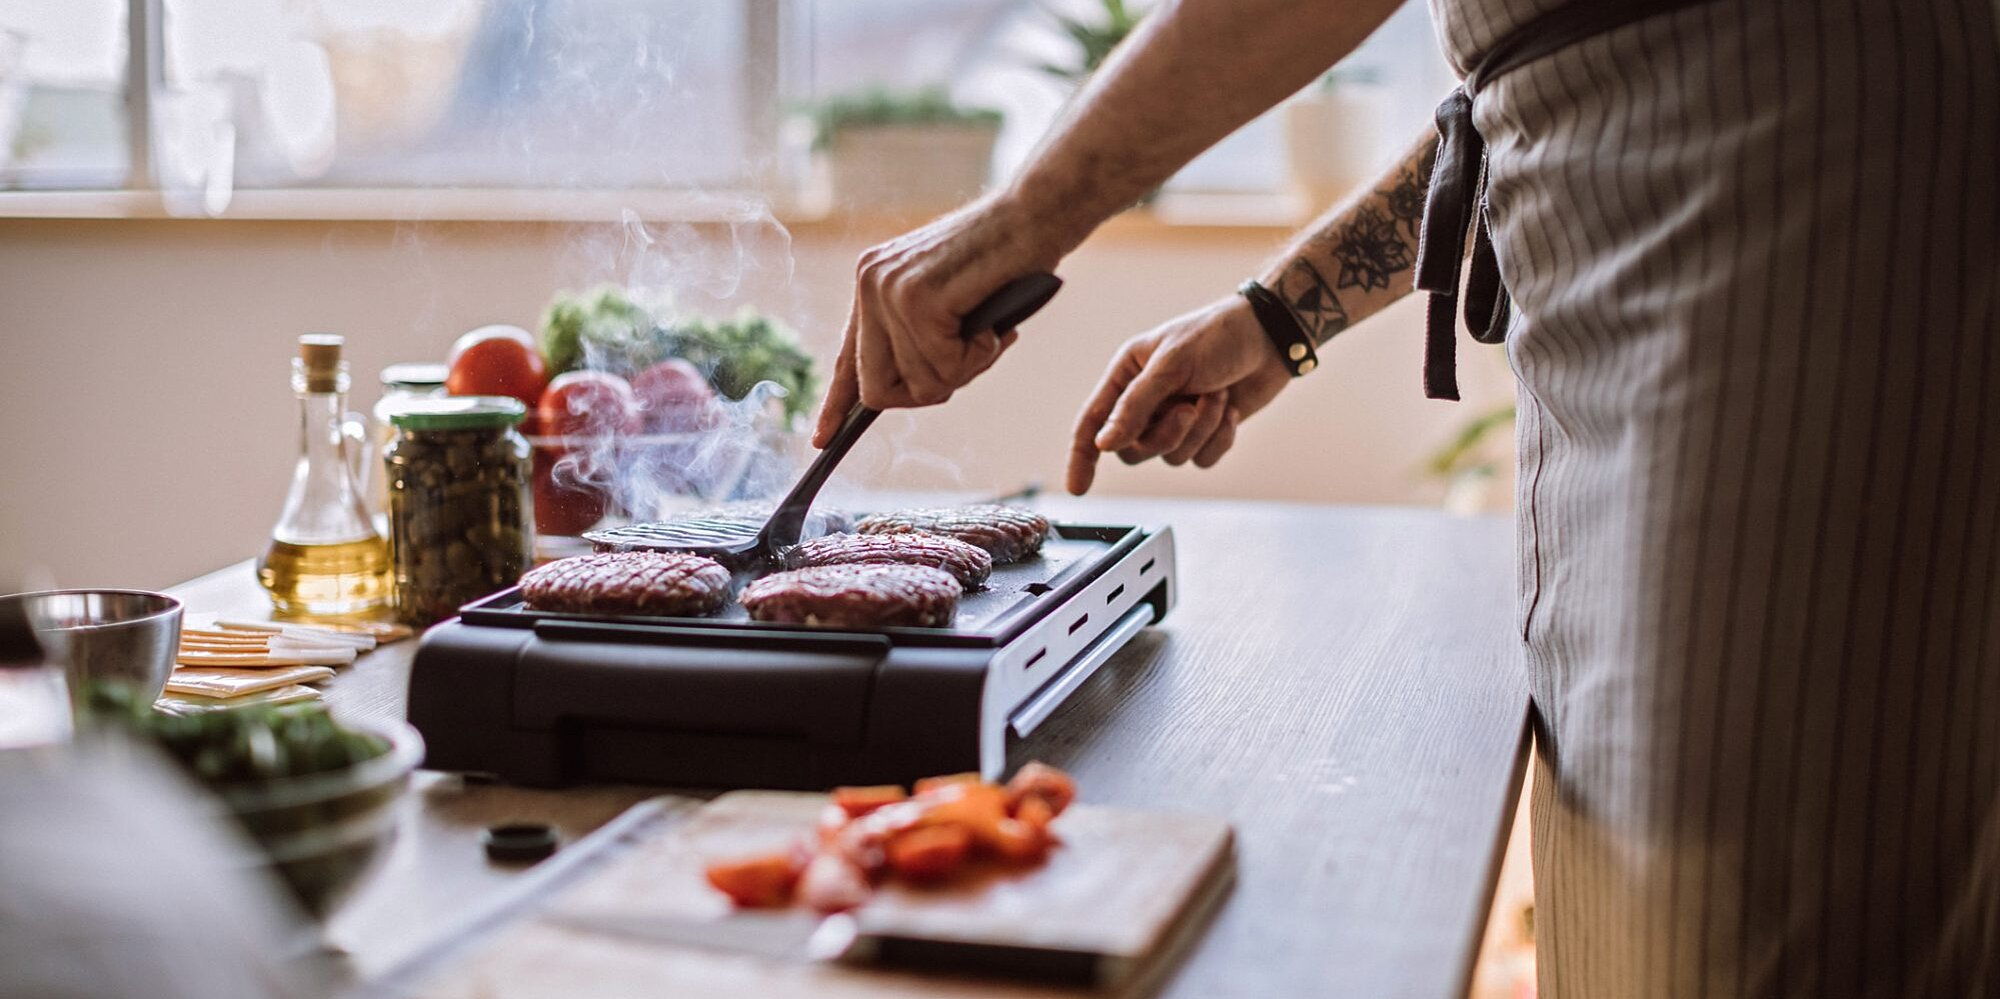 how to get outdoor flavor from an indoor grill